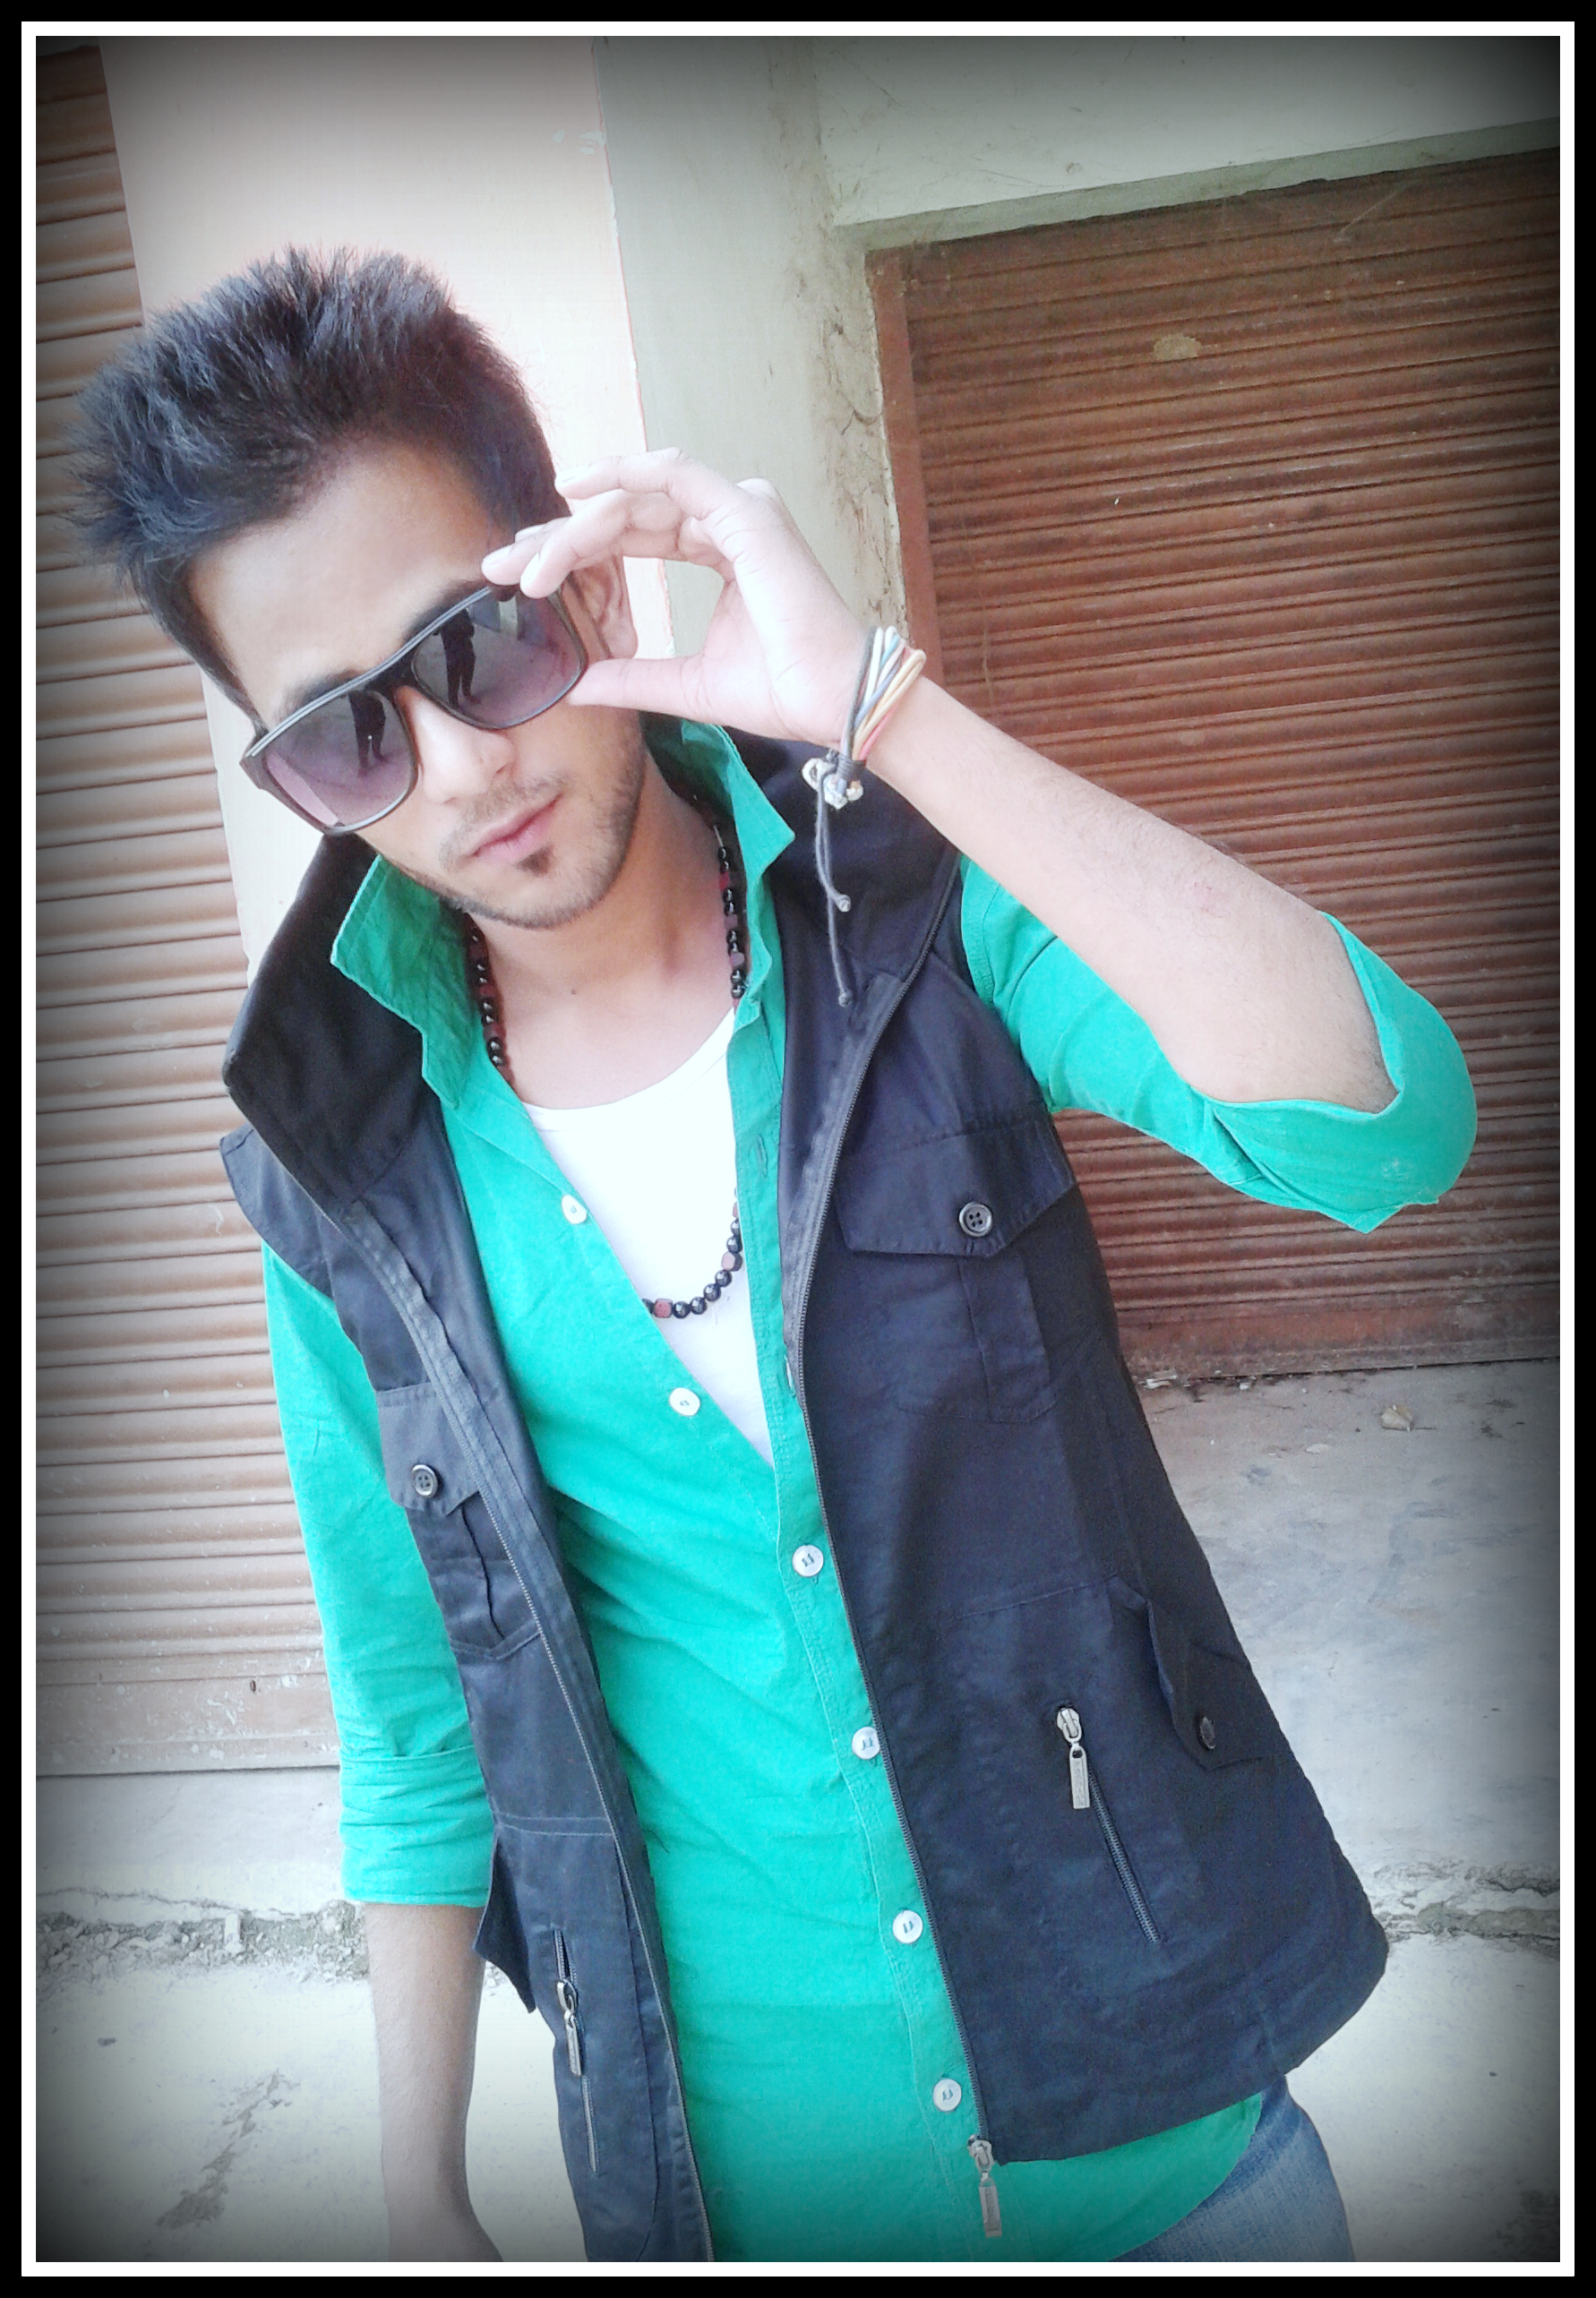 Buy Swag stylishly boy fb profile pictures trends